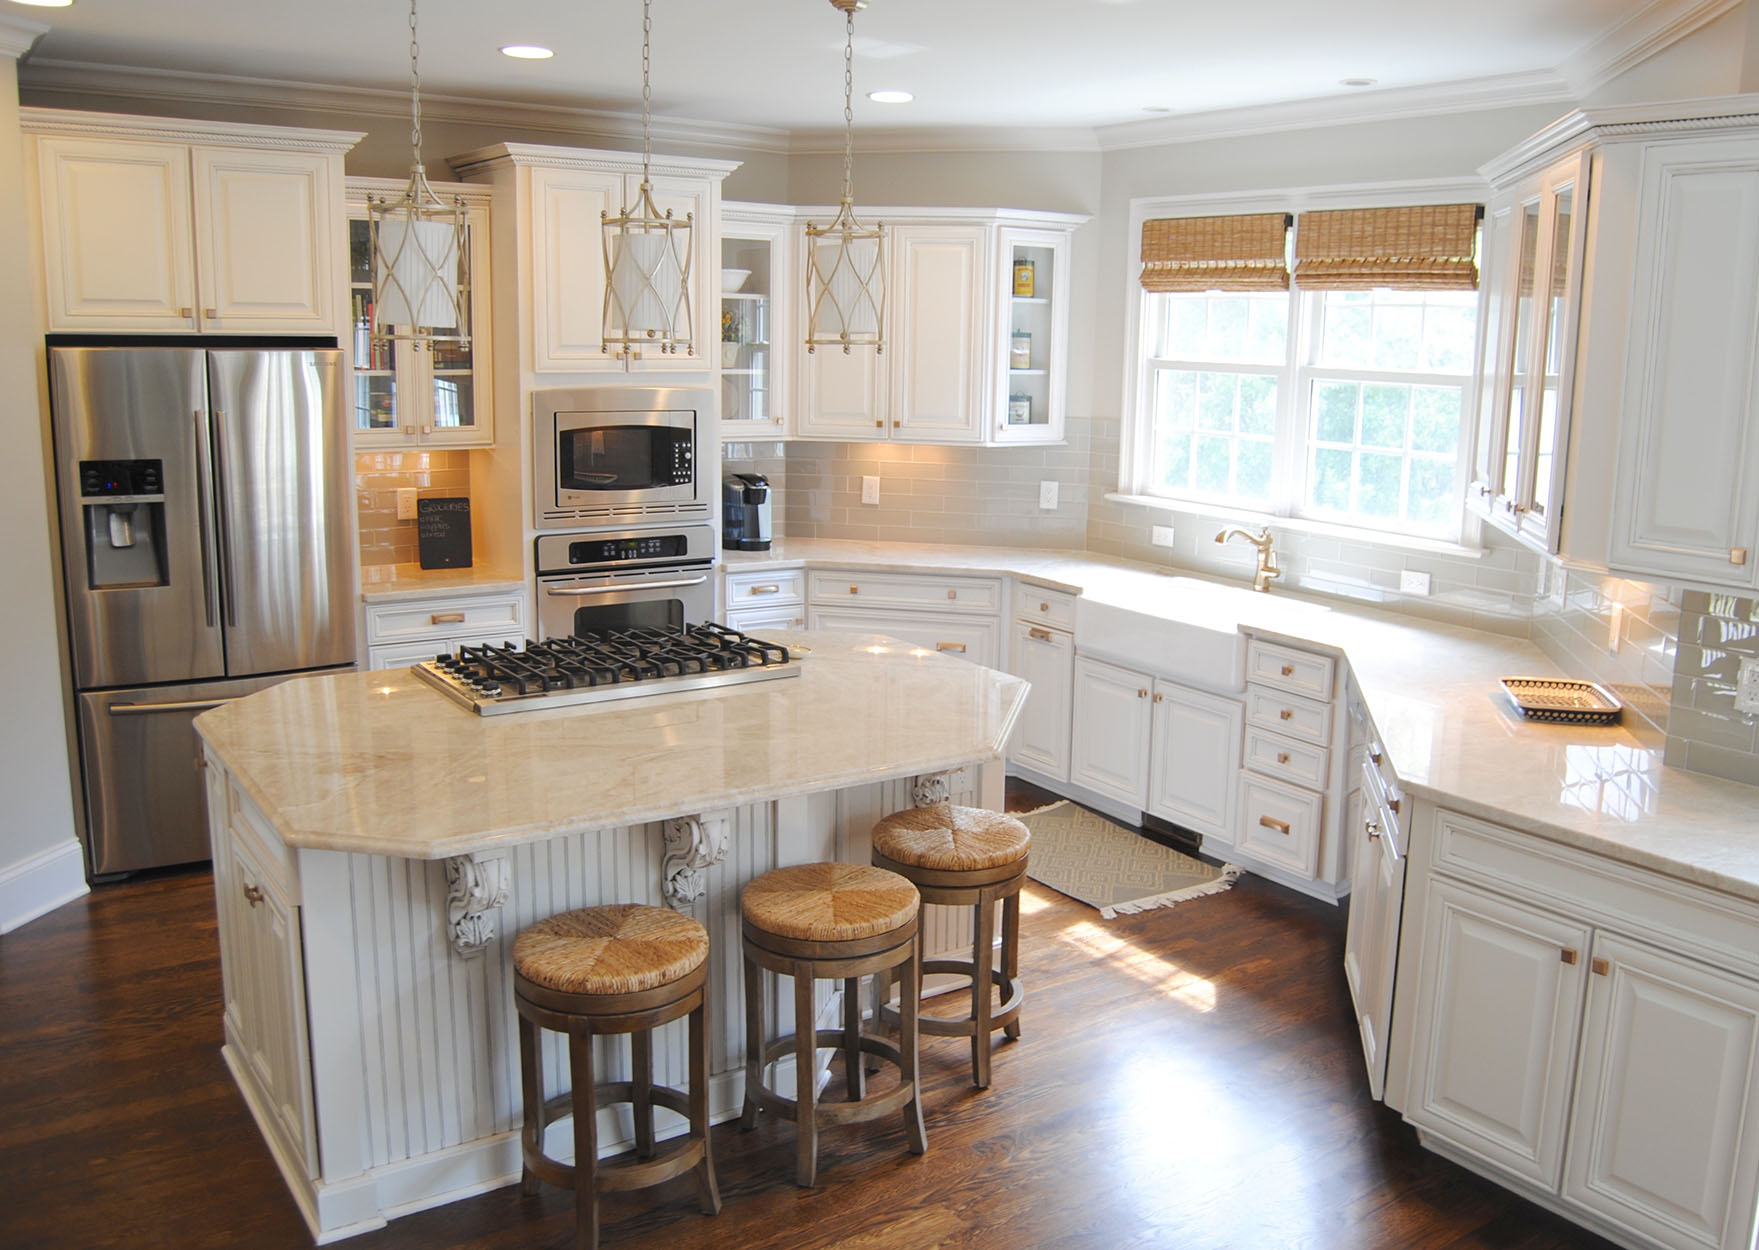 Kitchen Countertops Product : Choosing a countertop material which is best